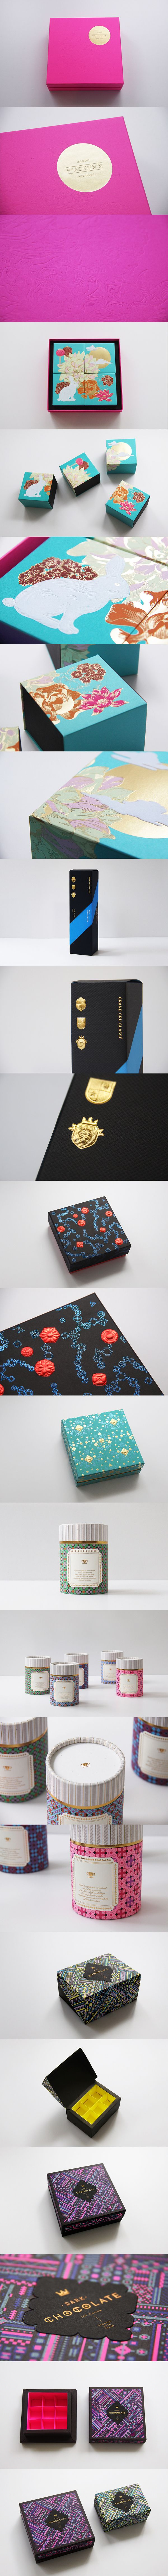 Love this so much! Astrobrights Packaging by Ken Lo. Look at the embellishments on this #packaging PD